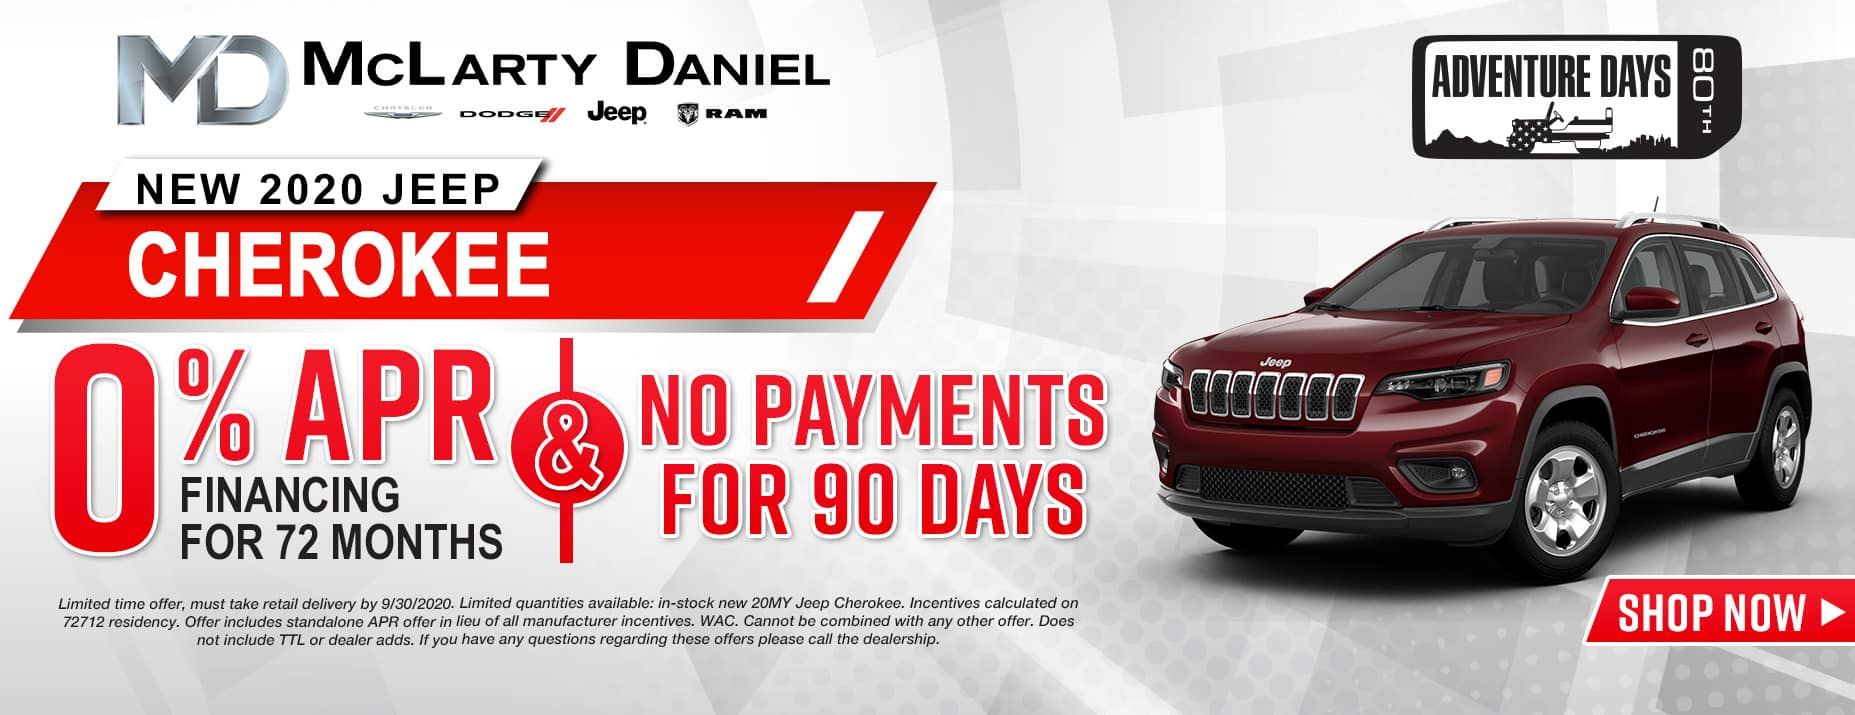 0% APR for 72 months and NO PAYMENTS FOR 90 DAYS available on 2020 Jeep Cherokee!